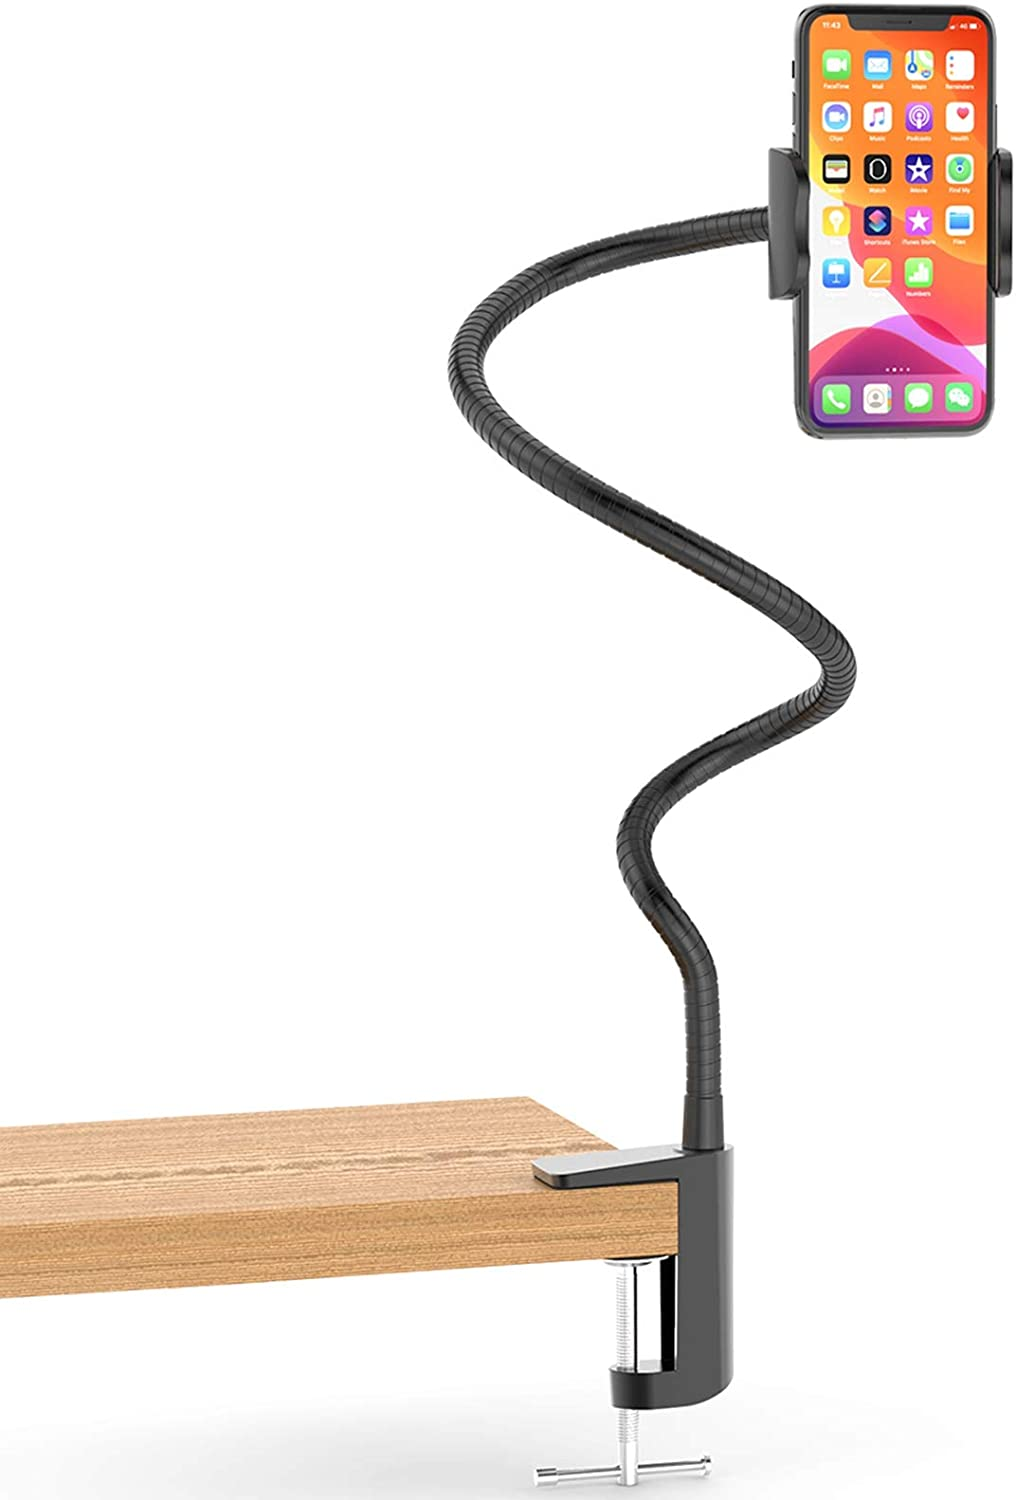 Stainless Steel Gooseneck Cell Phone Holder, Universal 360° Flexible Mobile Phone Stand   Lazy Arm Holder Clamp Mount Bracket Bed Dock Compatible with iPhone 12/11 Pro Max Xs S20 S10 Note 20 Note 10